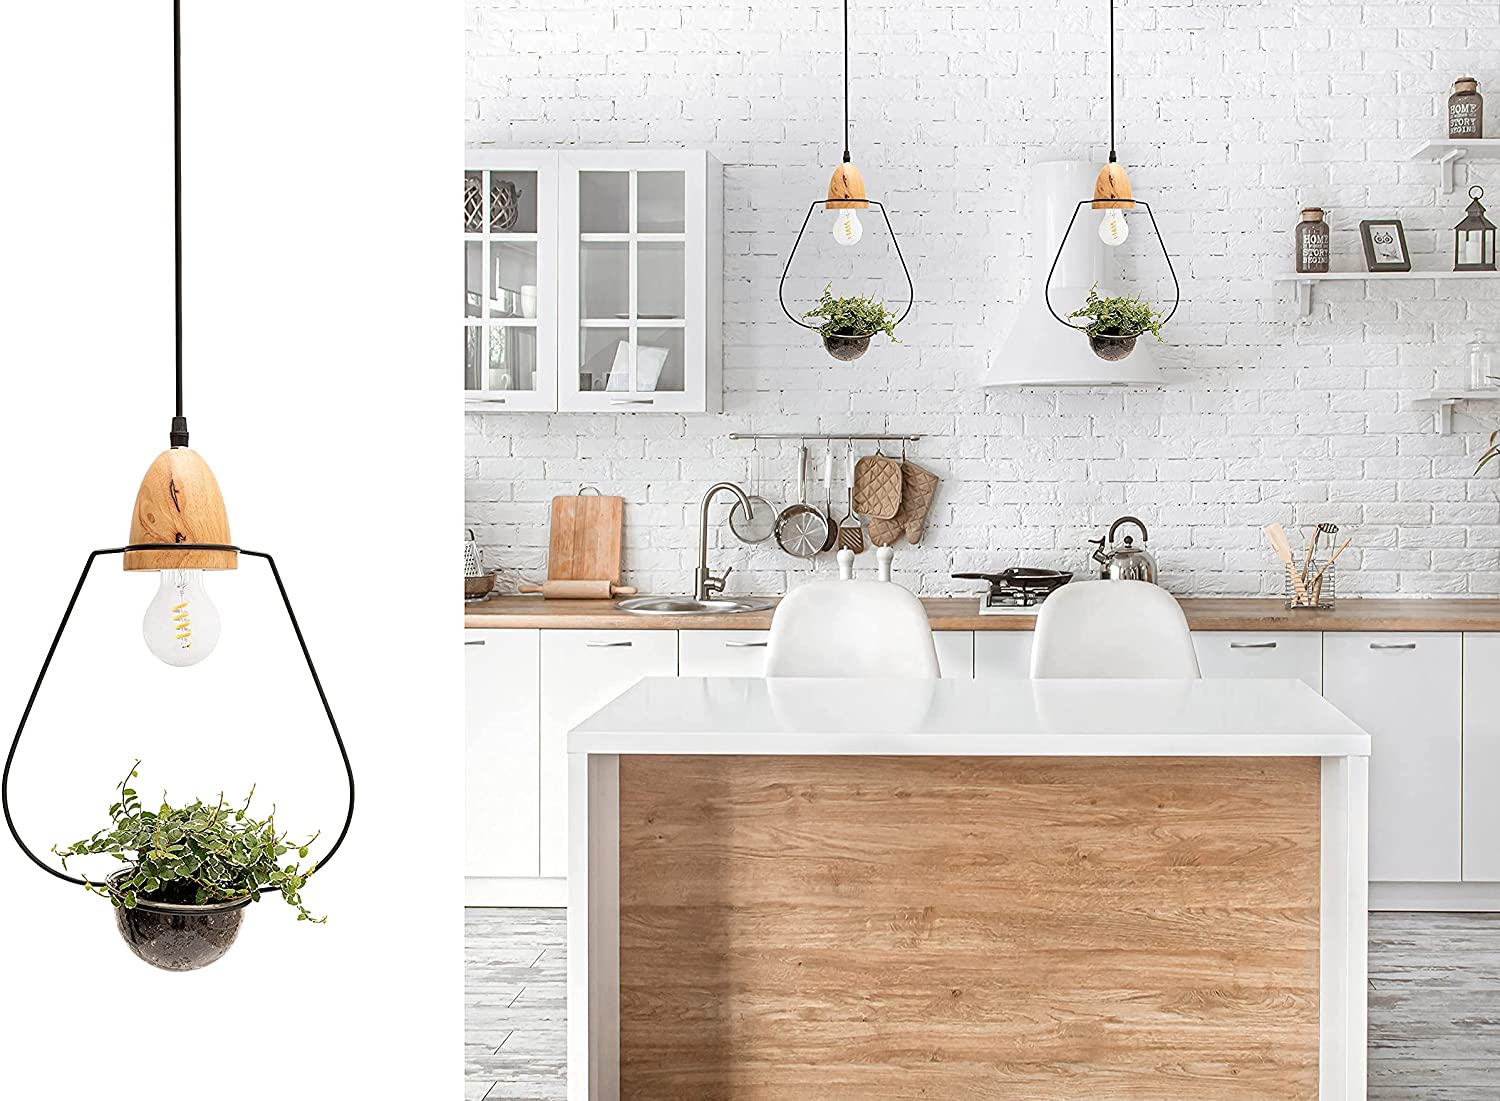 """Pendant Light for Kitchen Island Dining Room Lighting Fixtures Hanging with Plant Pot and Adjustable Wire up to 35"""" Ideal for Dining or Kitchen Table and Nordic Style Decorated Bars by Scandinaf. - -"""